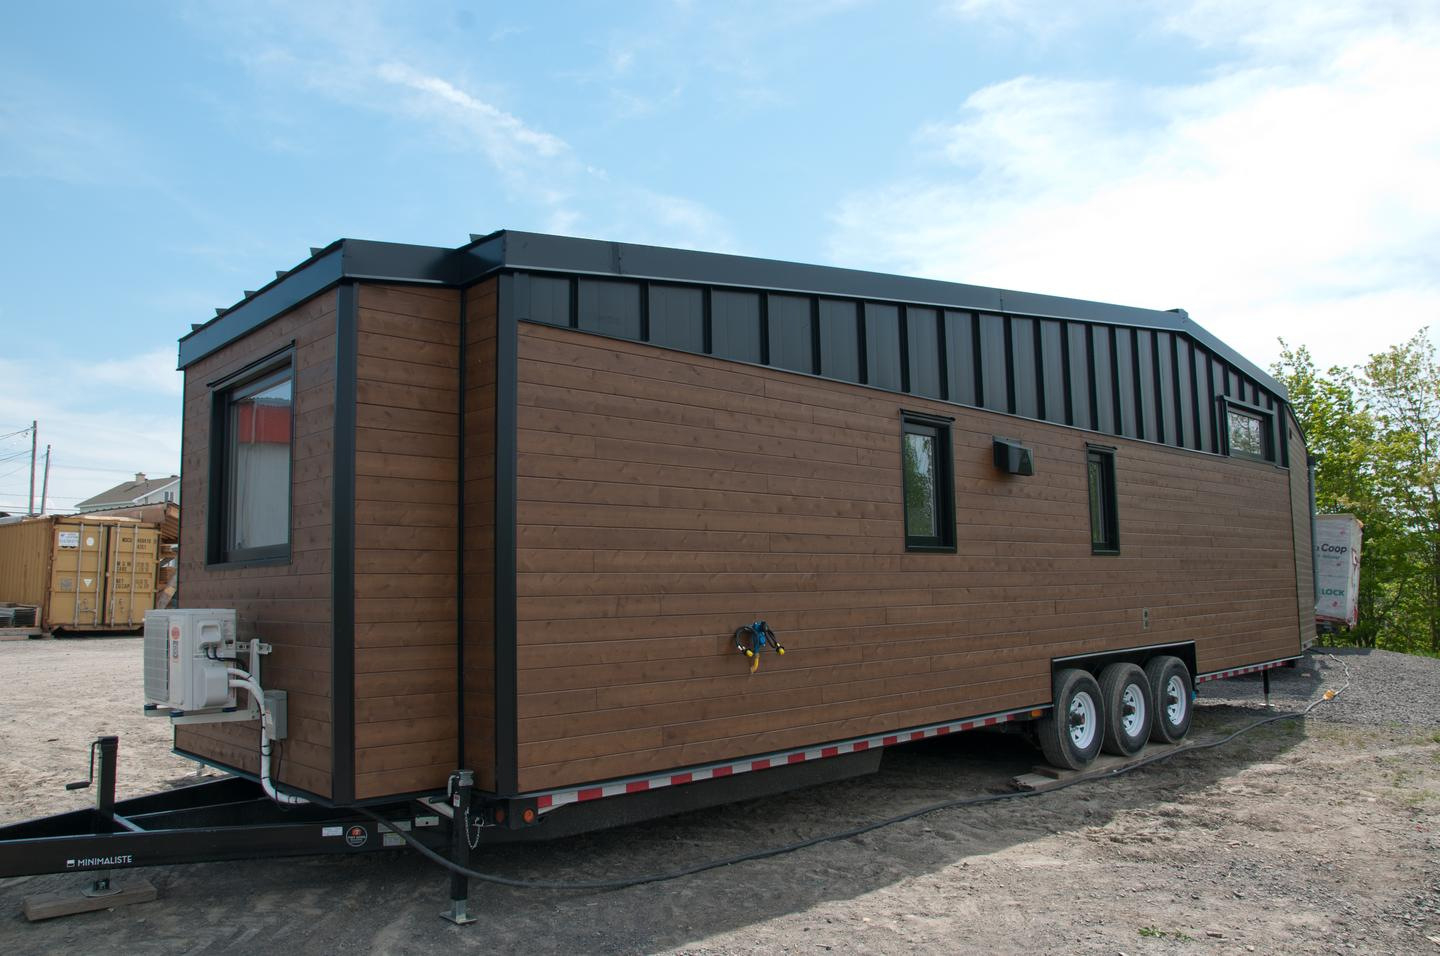 The Noyer XL V2 is based on a triple-axle trailer and is finished in horizontal cedar and vertical steel